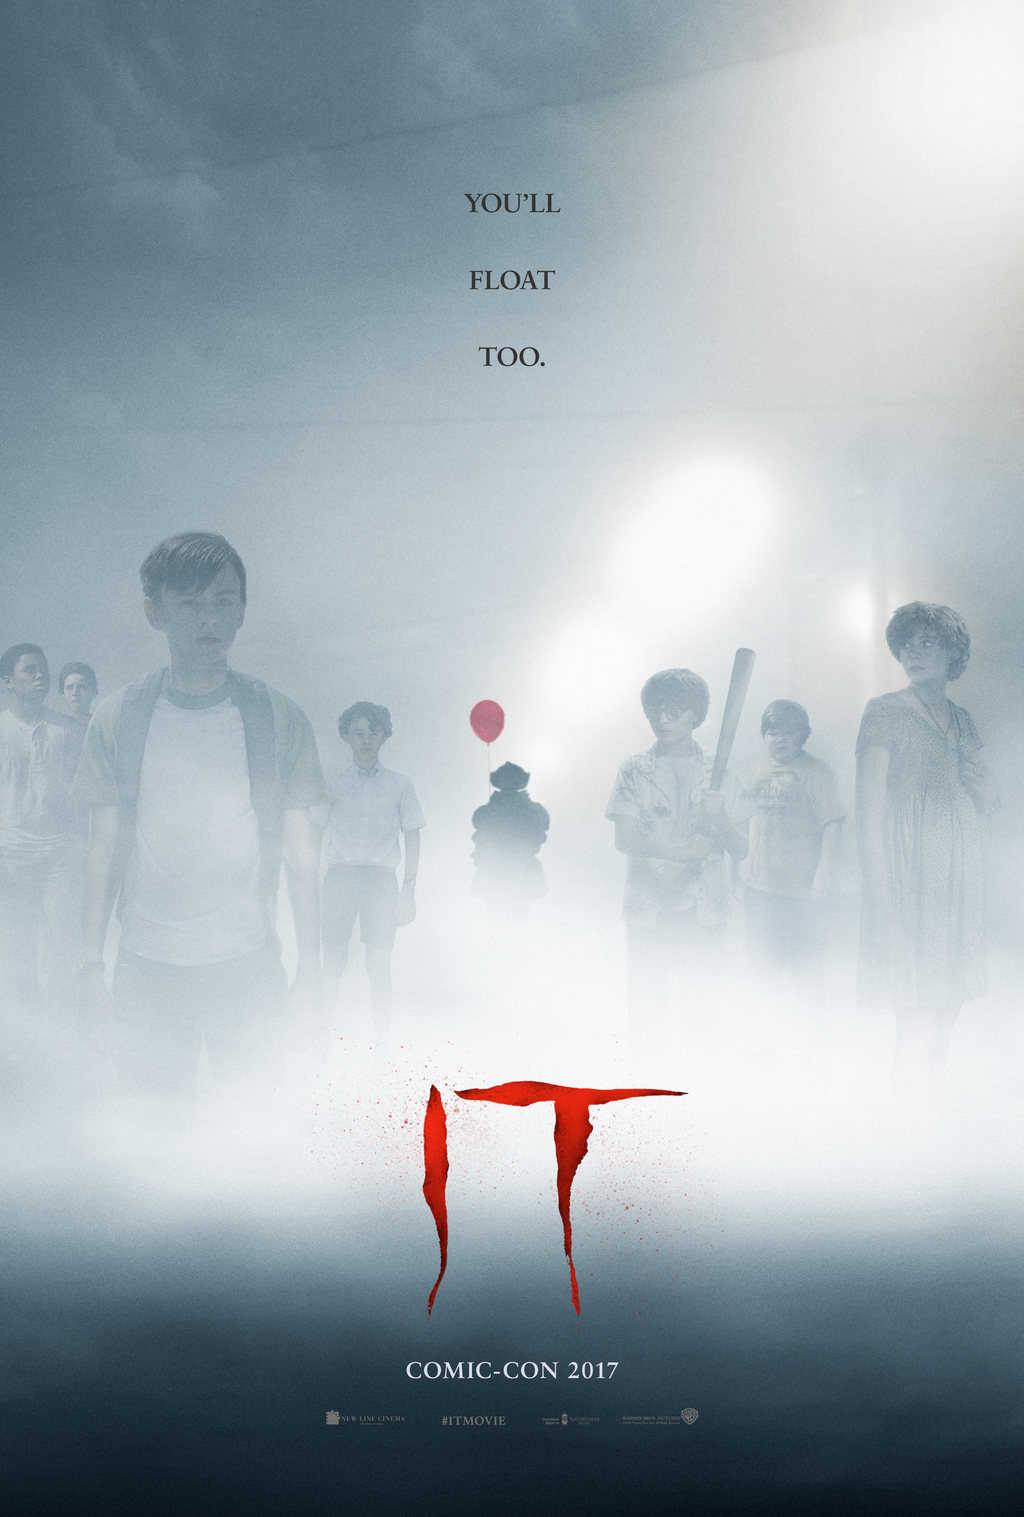 Warner Bros. release a new one sheet for IT, based on the novel by Stephen King, coming to cinemas 8th September ahead of Comic Con San Diego 2017